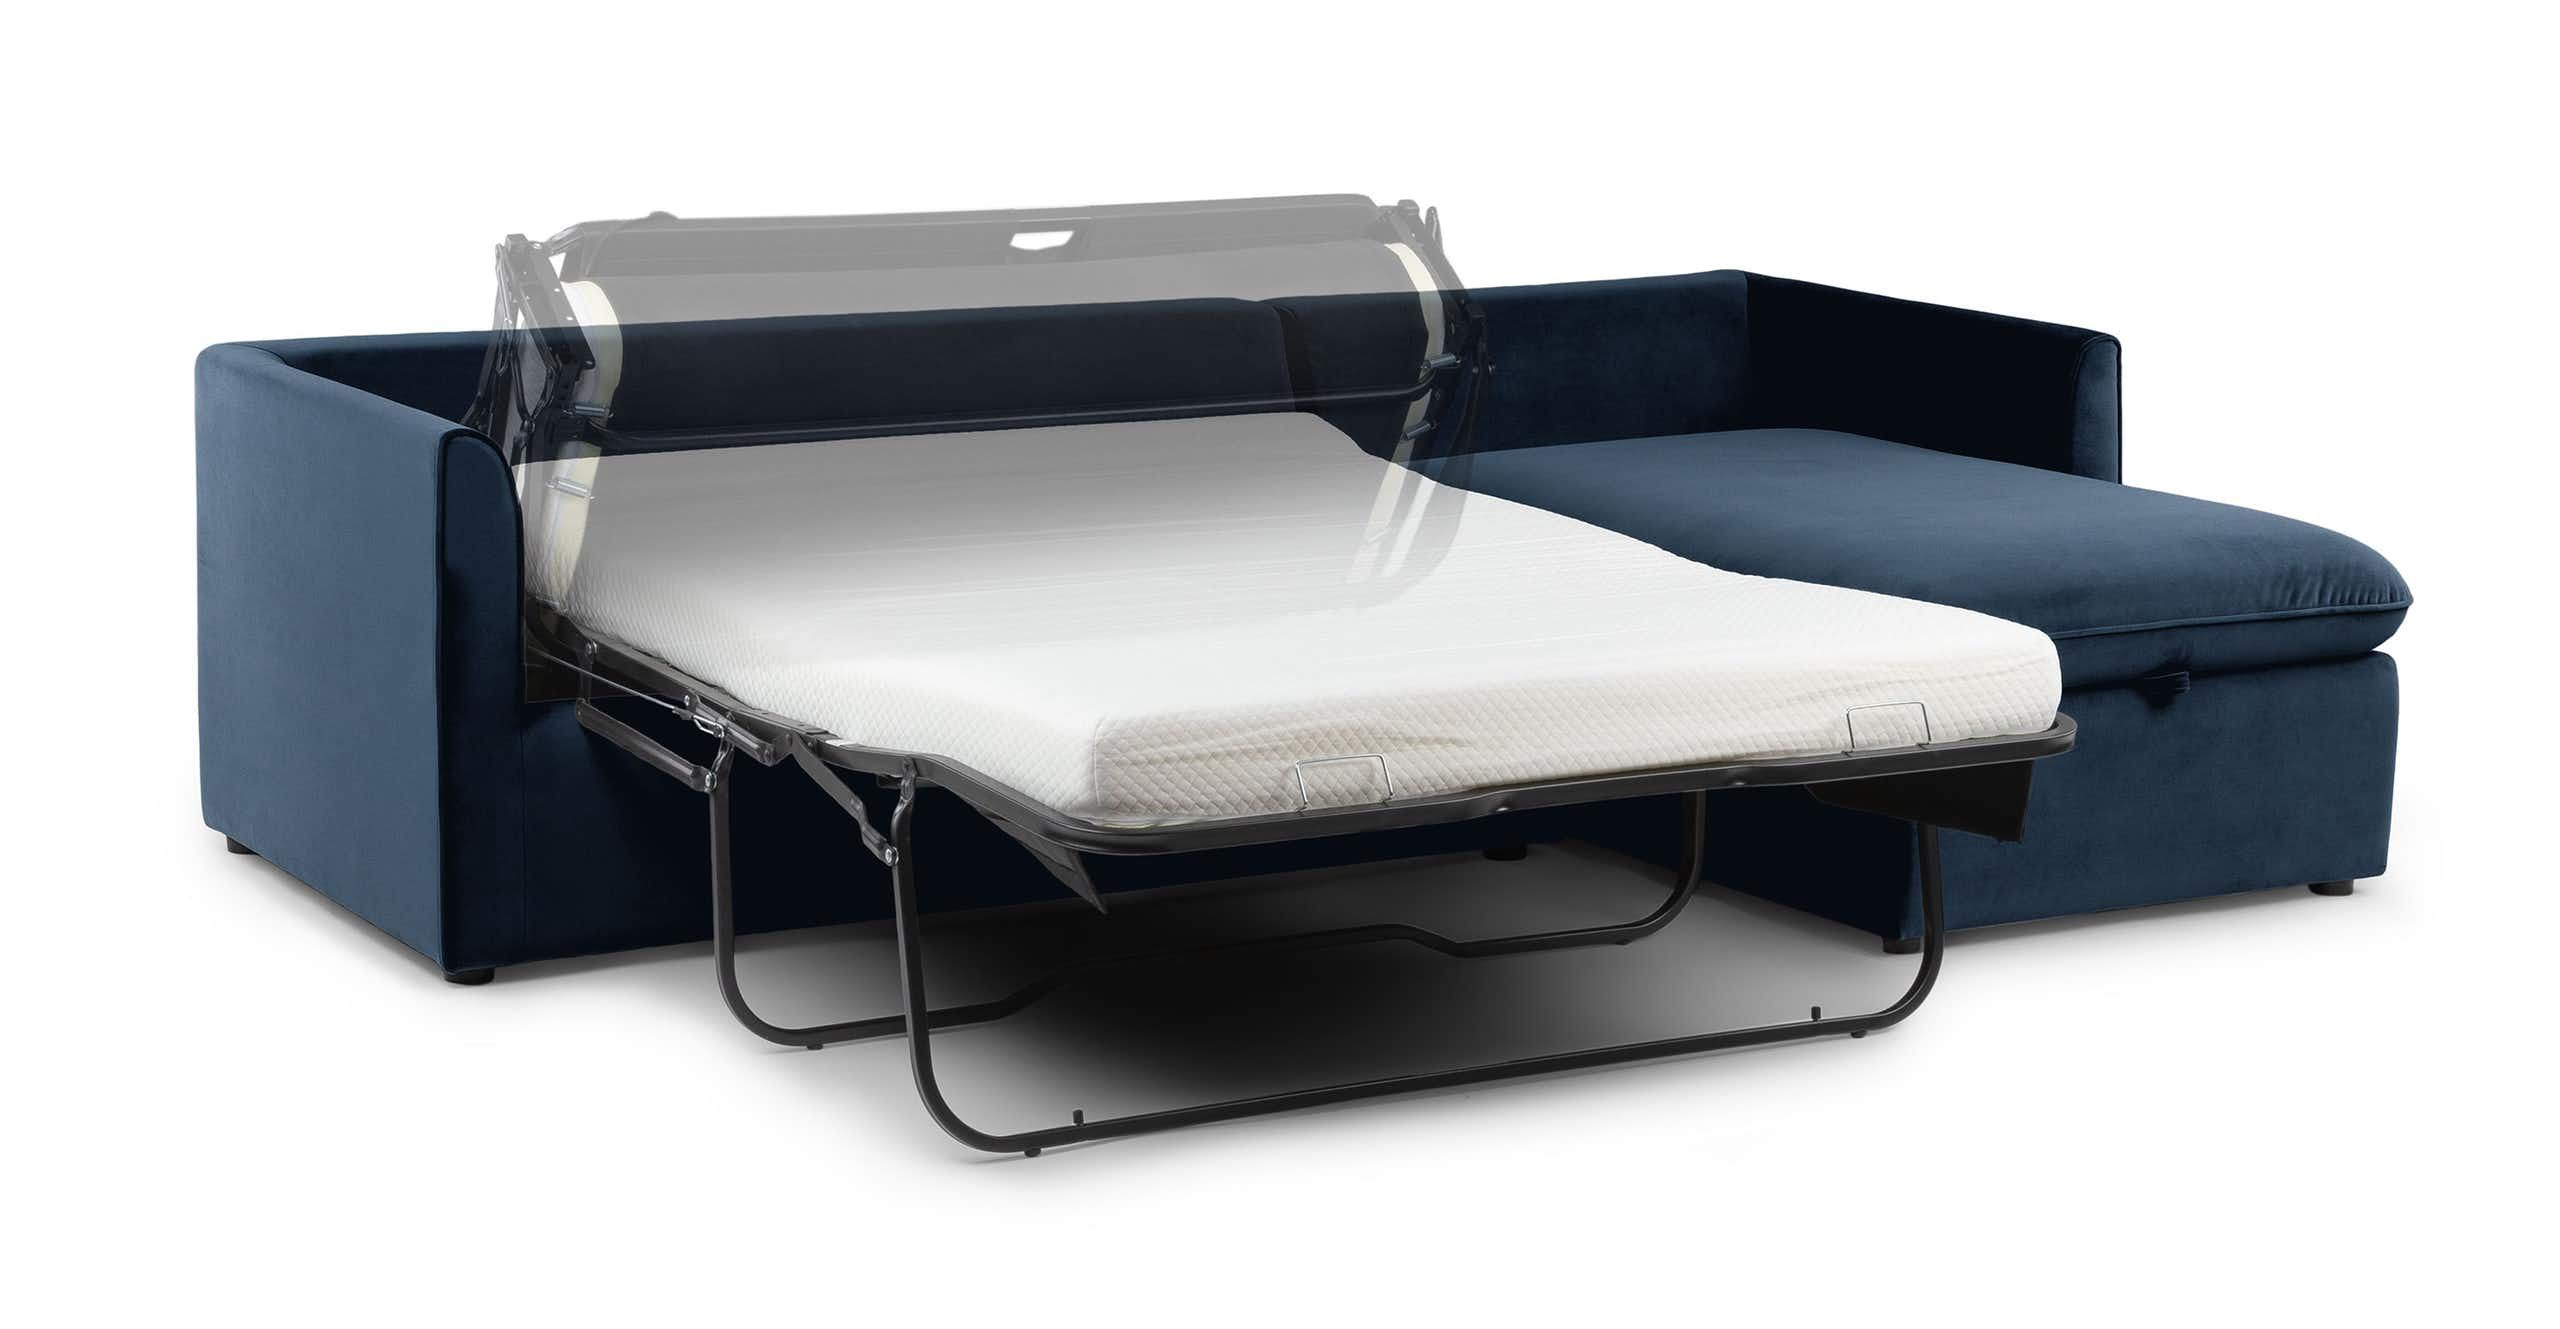 ikea hack ikea ektorp sofa bed with new Bemz covers and